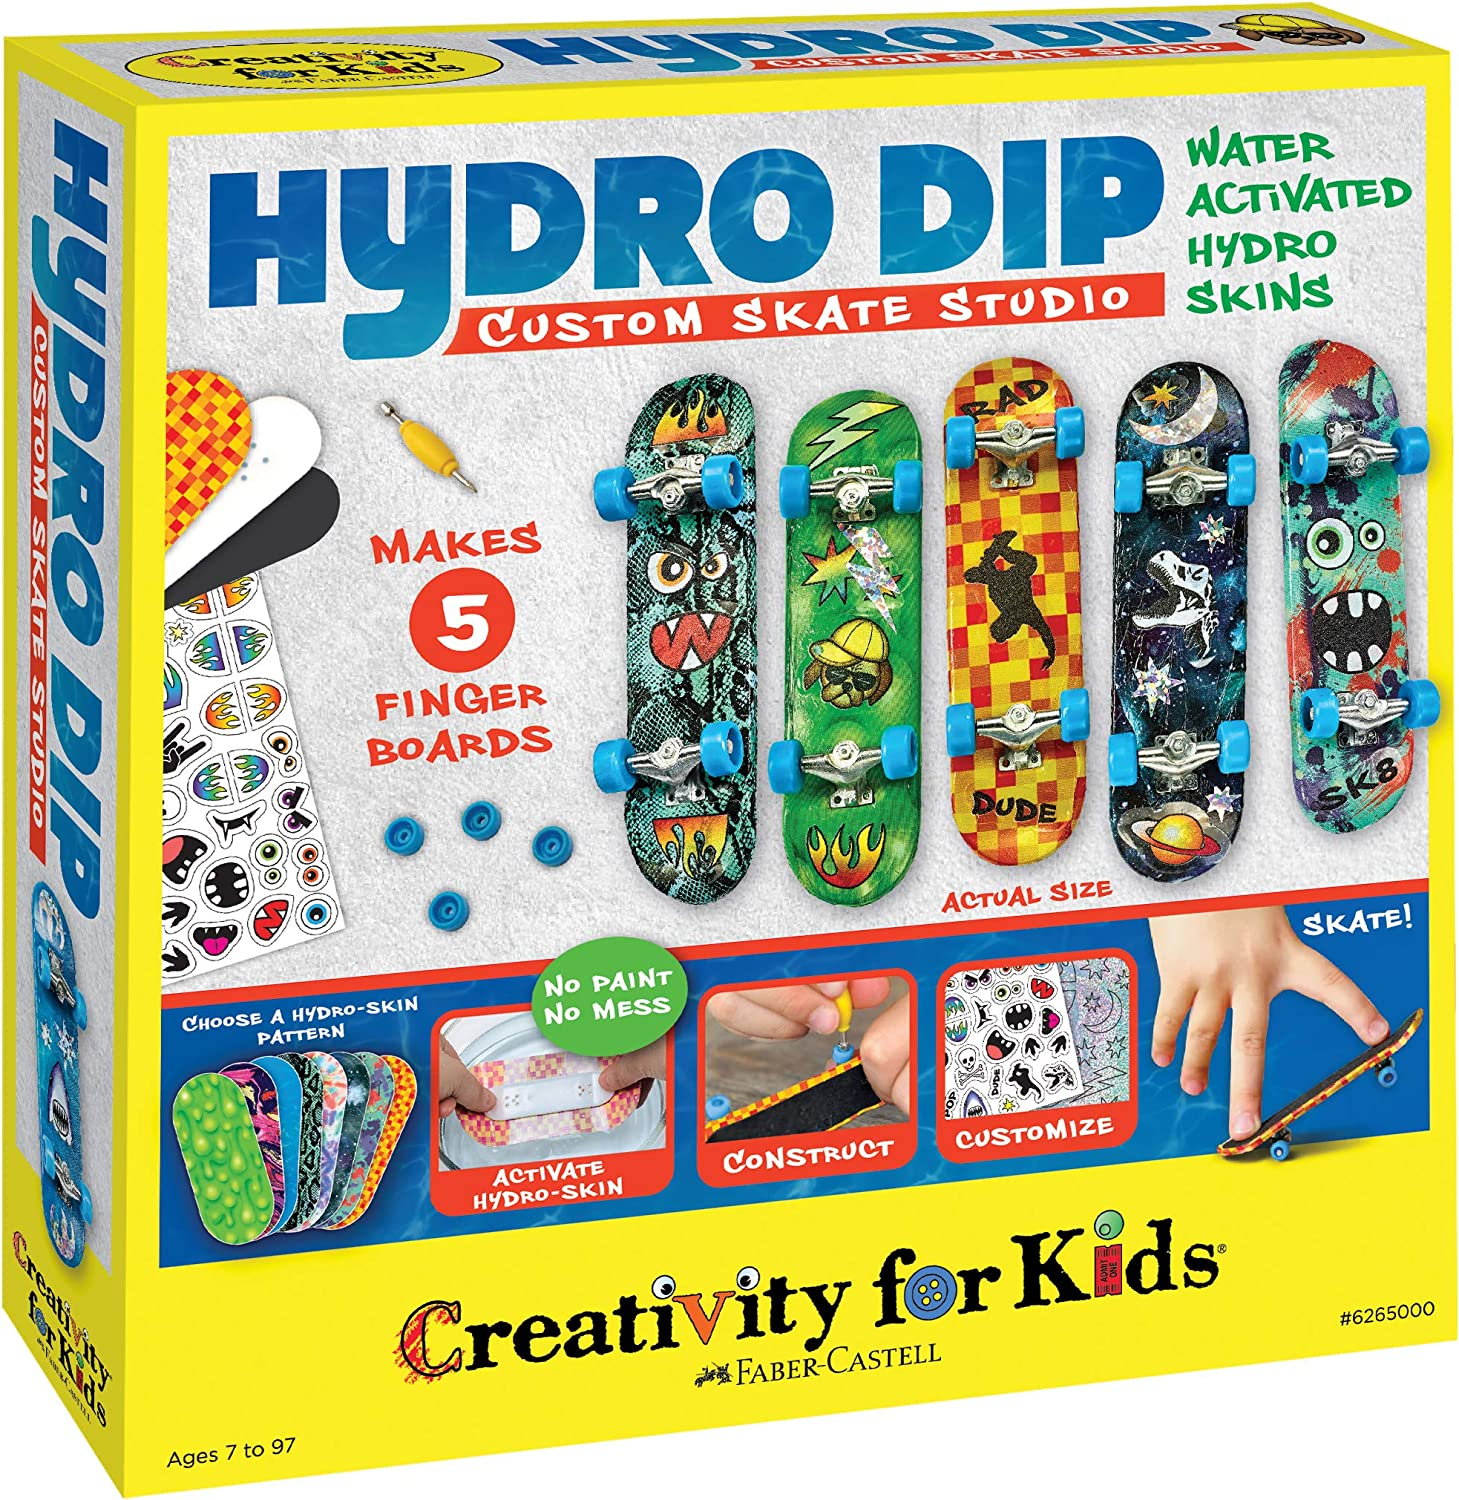 Creativity for Kids Hydro-Dip Custom Mini Studio Outlet sale OFFicial mail order feature – Fi Skate